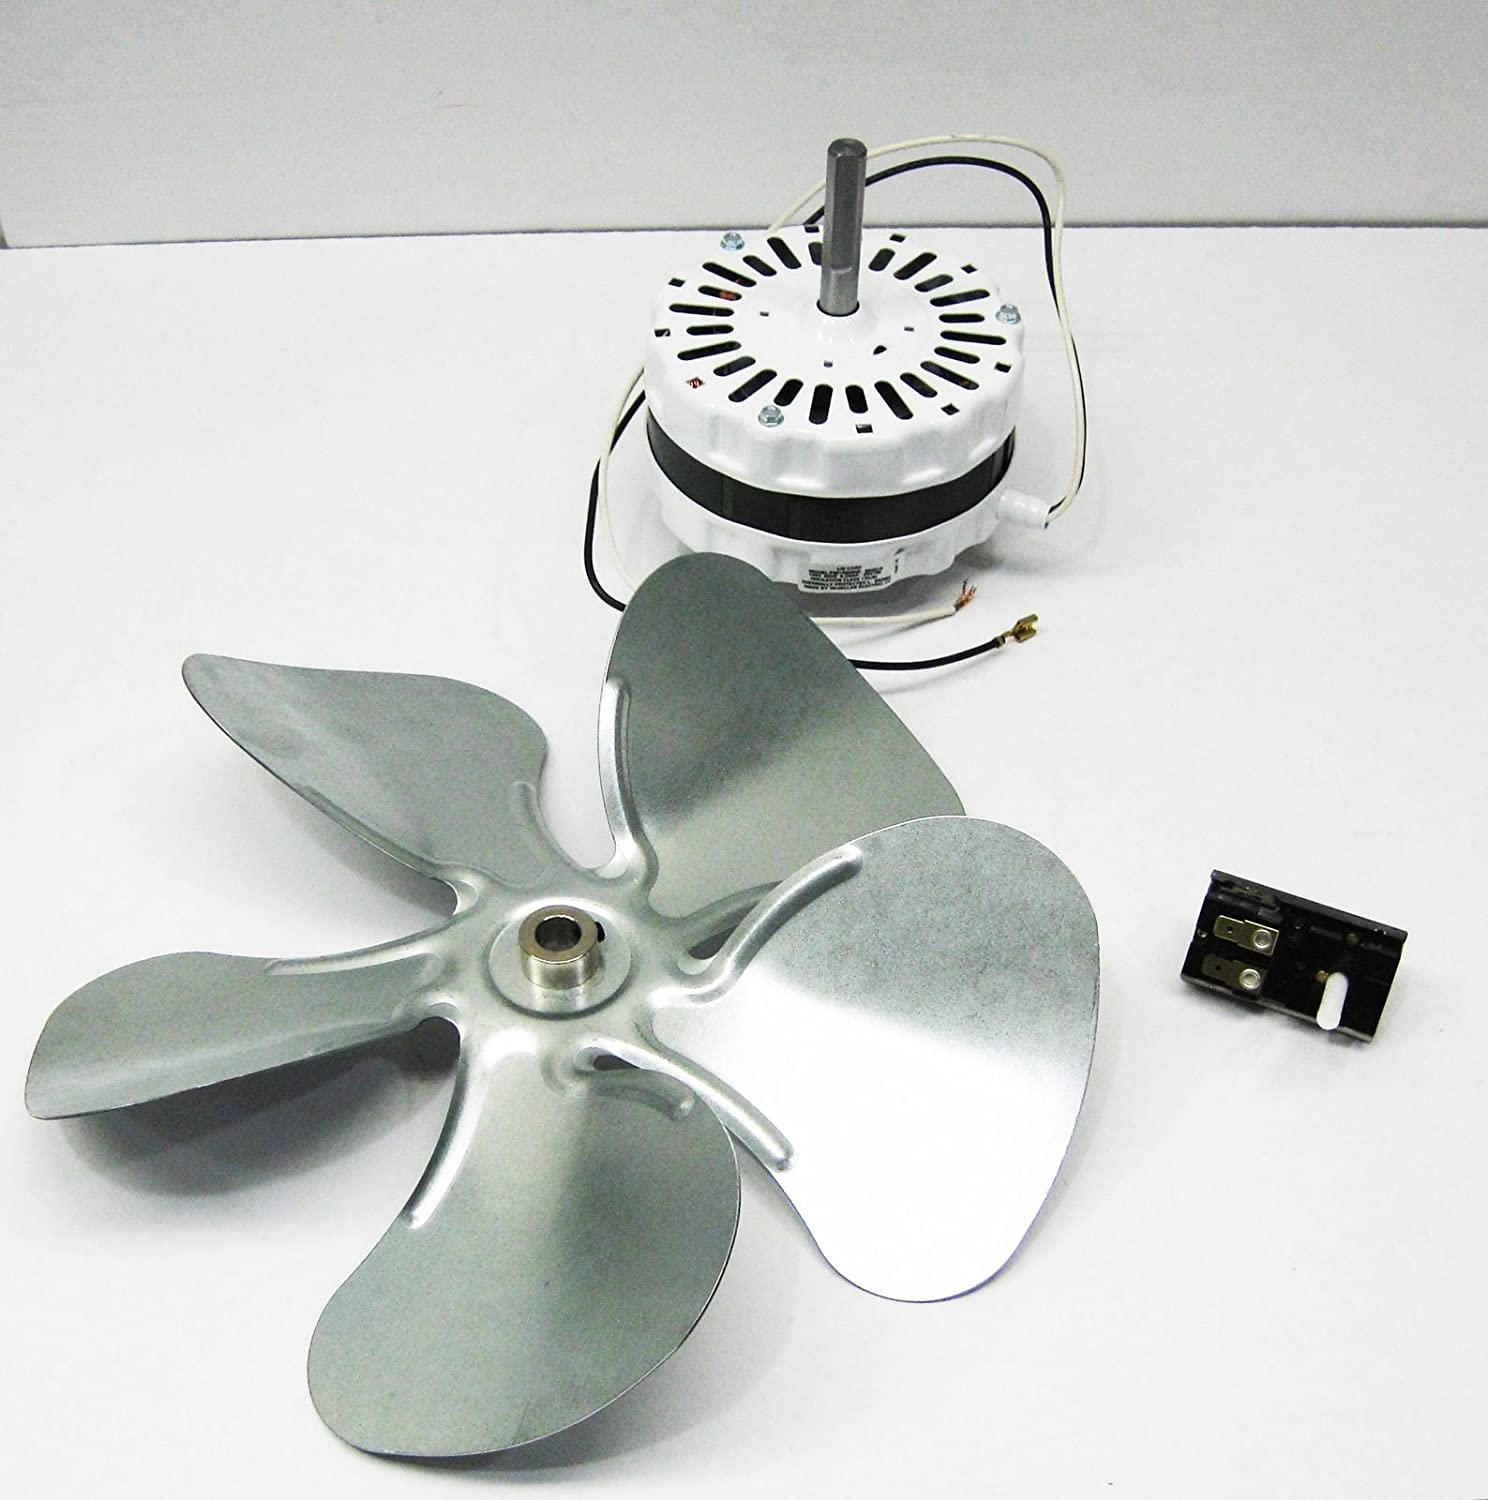 Ks New Attic Fan Ventilator Motor 12 Blade And 2 Wire Bi Metal Kansas City Fans Whole House Installation Thermostat Fits 1050 1200 Cfm